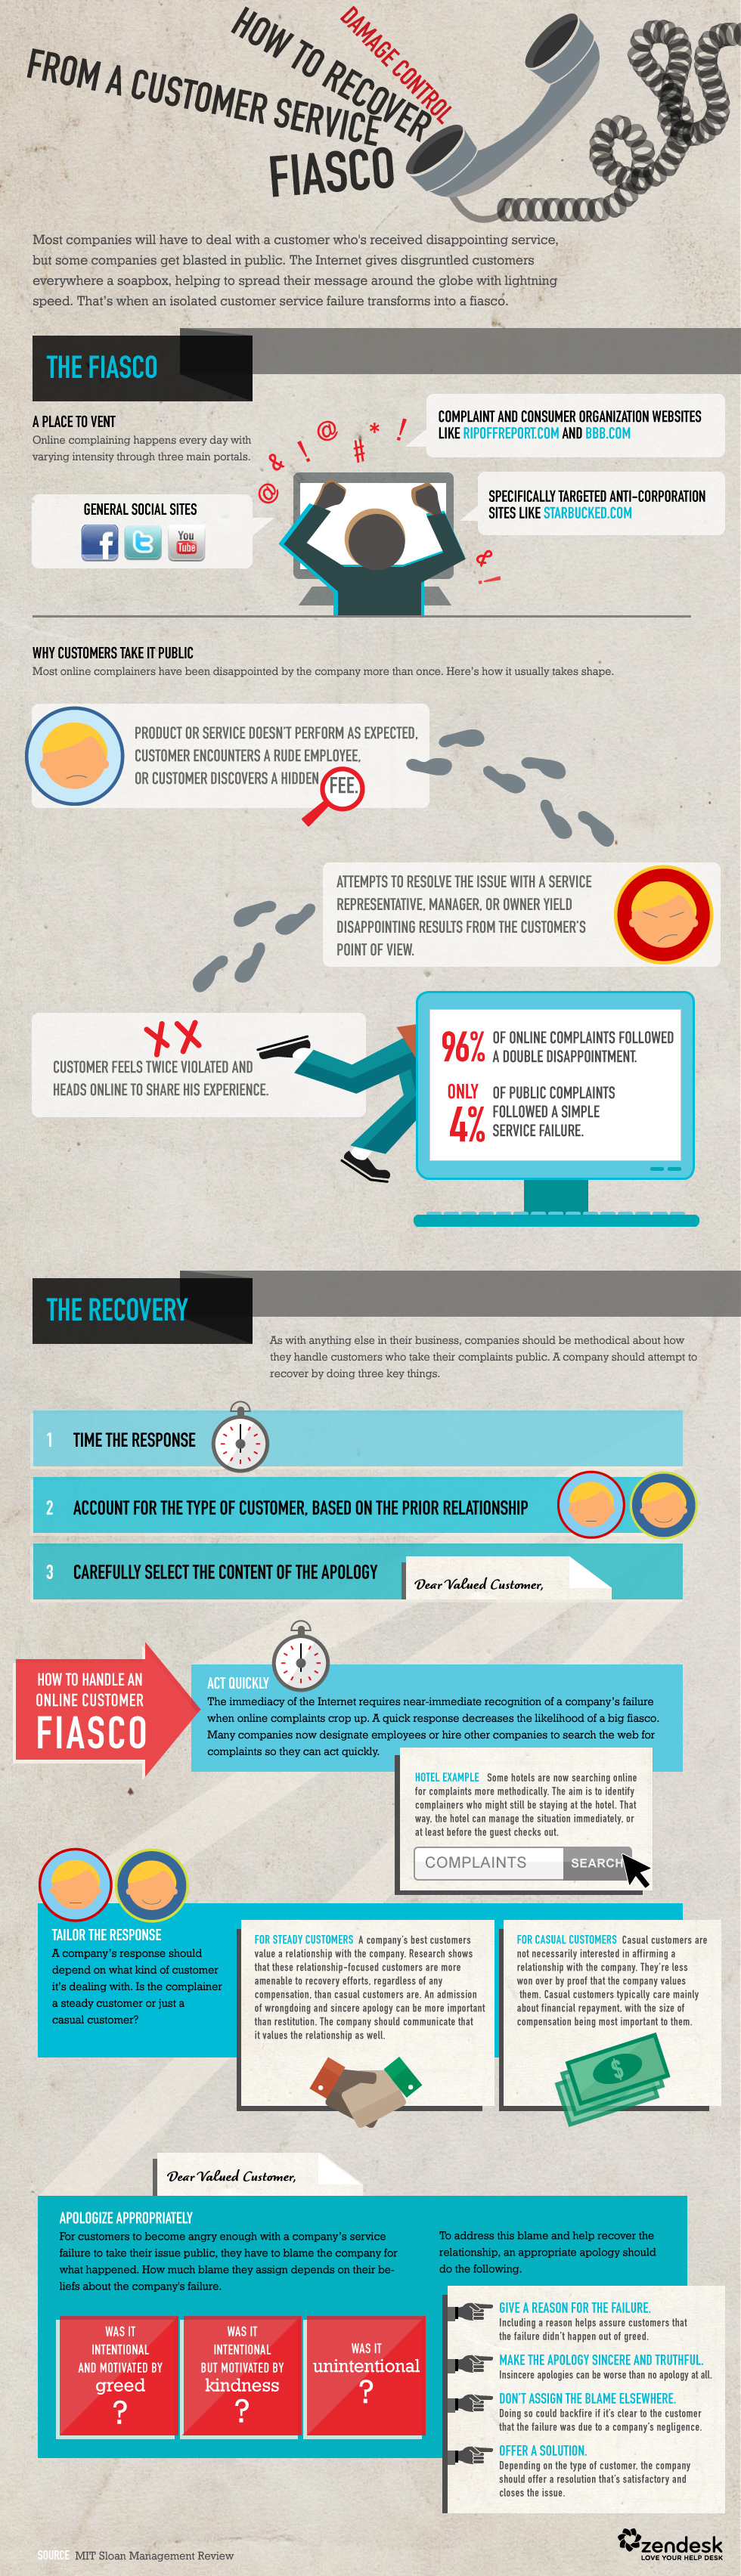 Infographic: Advice on damage control of online complaints